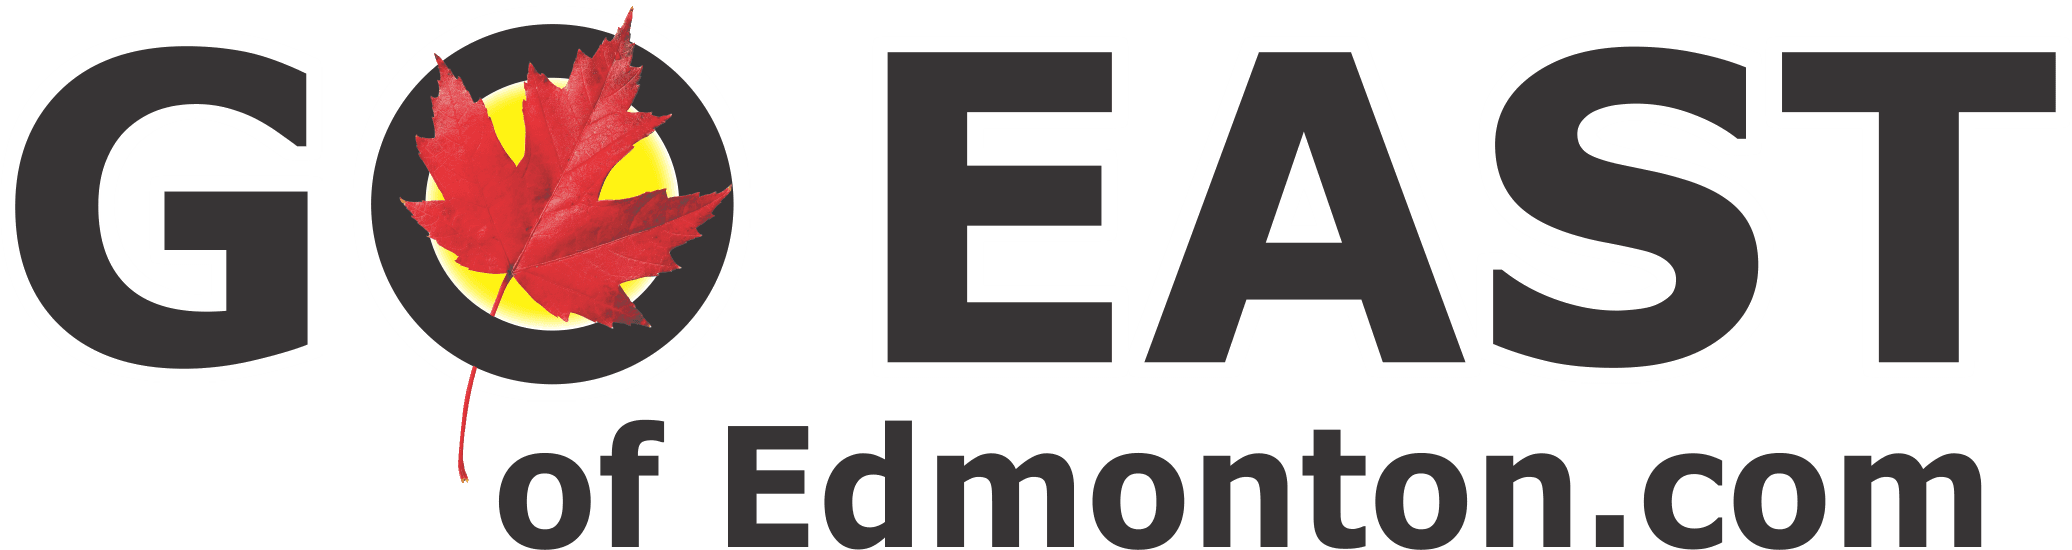 Go East of Edmonton